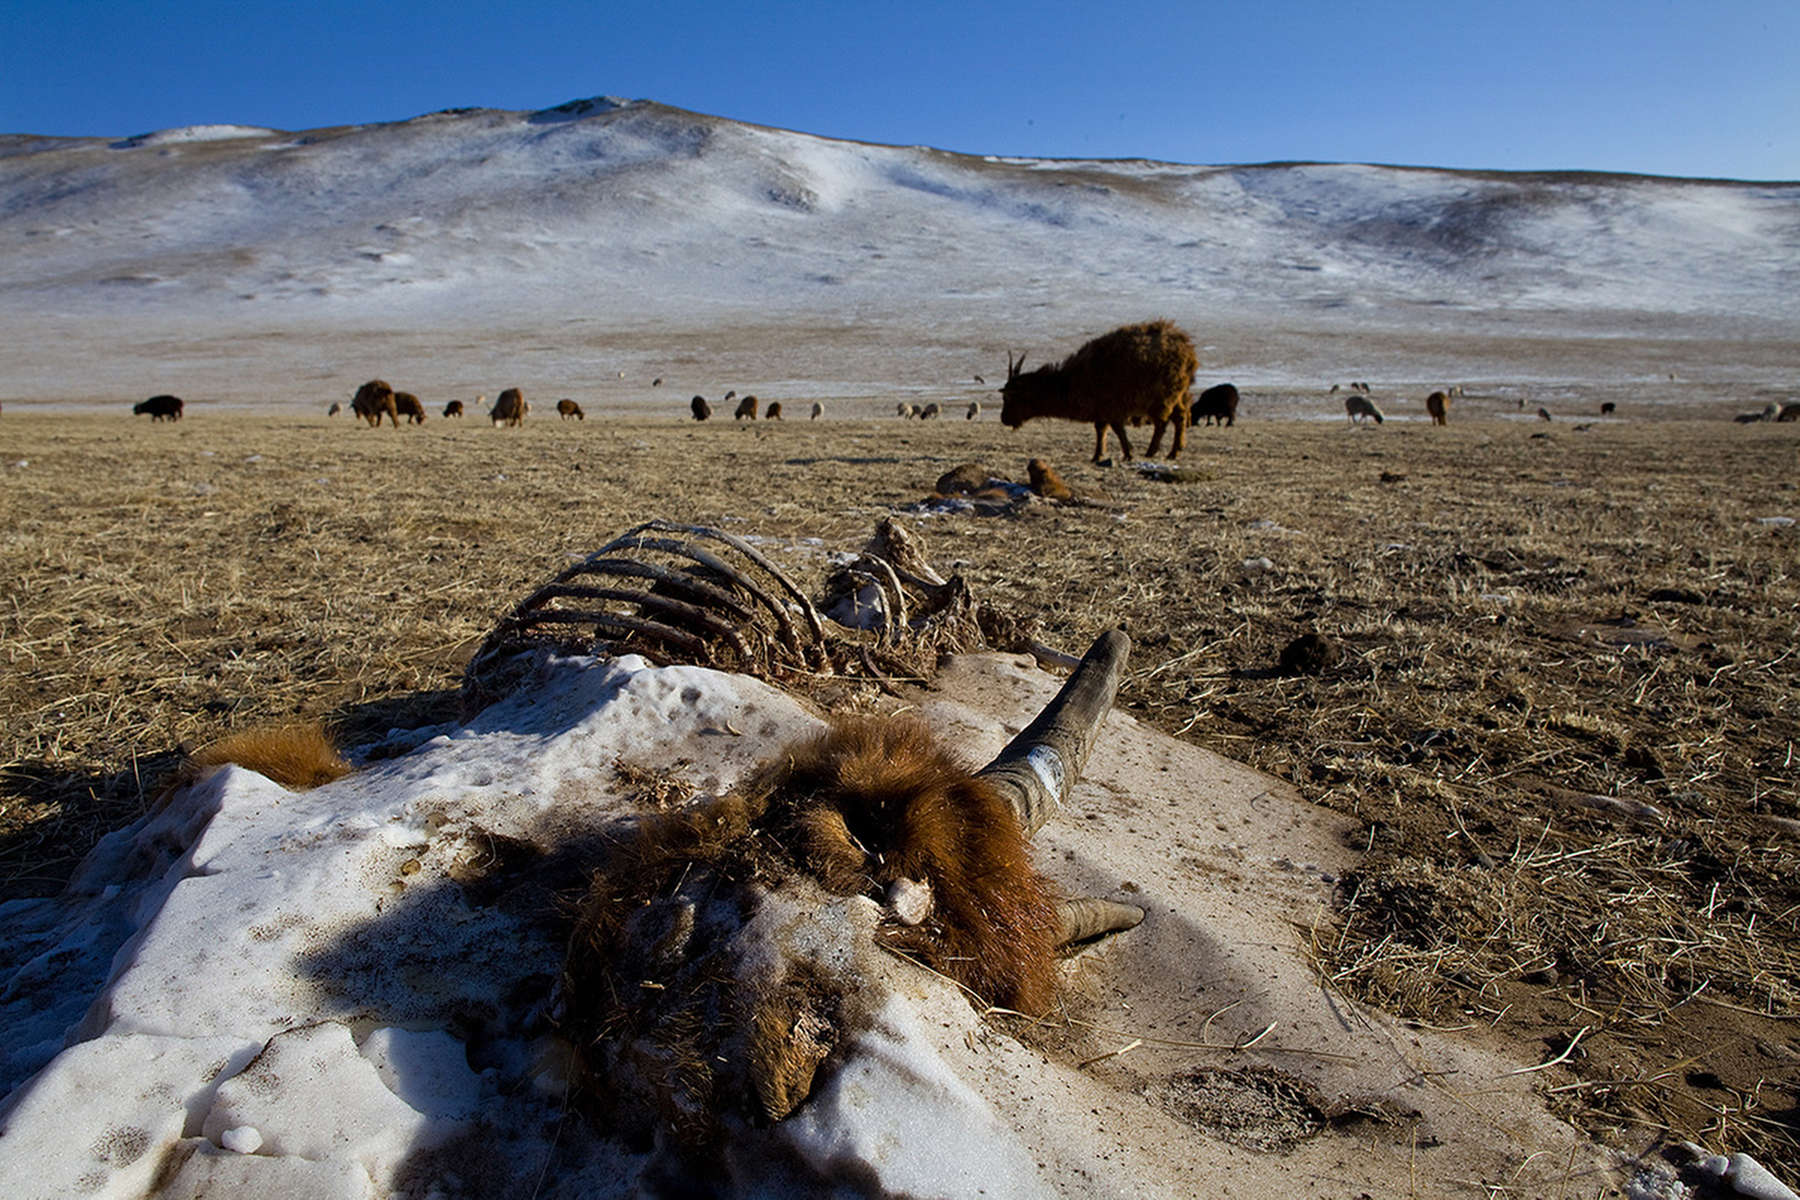 BAYANTSOGT, MONGOLIA-MARCH 14 : Frozen animal remains along the Mongolian landscape March 14, 2010  in Bayantsogt, in Tuv province in Mongolia.  Mongolia is still experiencing one of the worst Winters in 30 years with 68 % of the provinces effected. Presently the government has declared an emergency requiring foreign aid to alleviate the impact of the {quote} Zud{quote} ( Mongolian term for a multiple natural disaster) caused by bitter cold and thick snow. Recently, the UN allocated $3.7 million for humanitarian assistance to Mongolia from its Central Emergency Response Fund (CERF). The United Nations Development Program (UNDP) is developing a cash-for-work program in Mongolia under which herders will earn income to clear and bury the carcasses of the over 2 million livestock that have perished nationwide. Currently 1.5 m goats, 921,000 sheep, 169,000 cows and yaks, 89,000 horses and 1,500 camels had died according to the various UN agency reports. (Photo by Paula Bronstein /Getty Images)